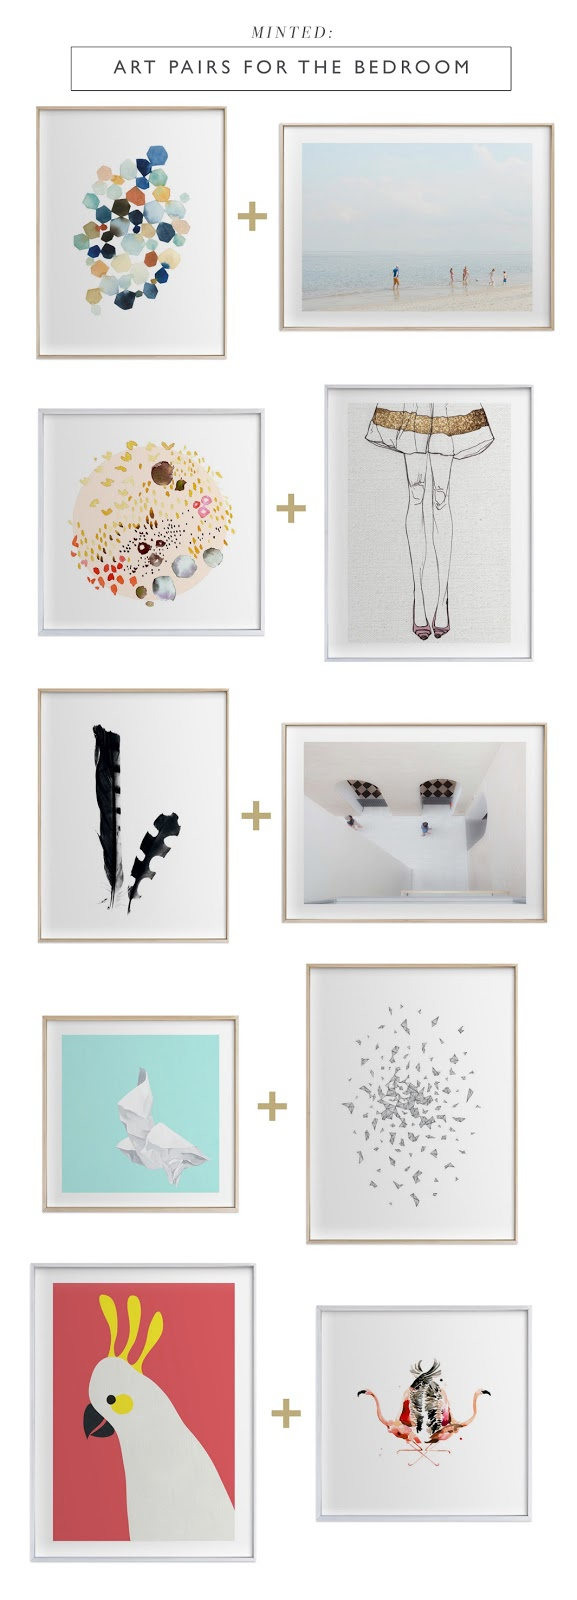 Minted art pairs for the bedroom | RamblingRenovators.ca